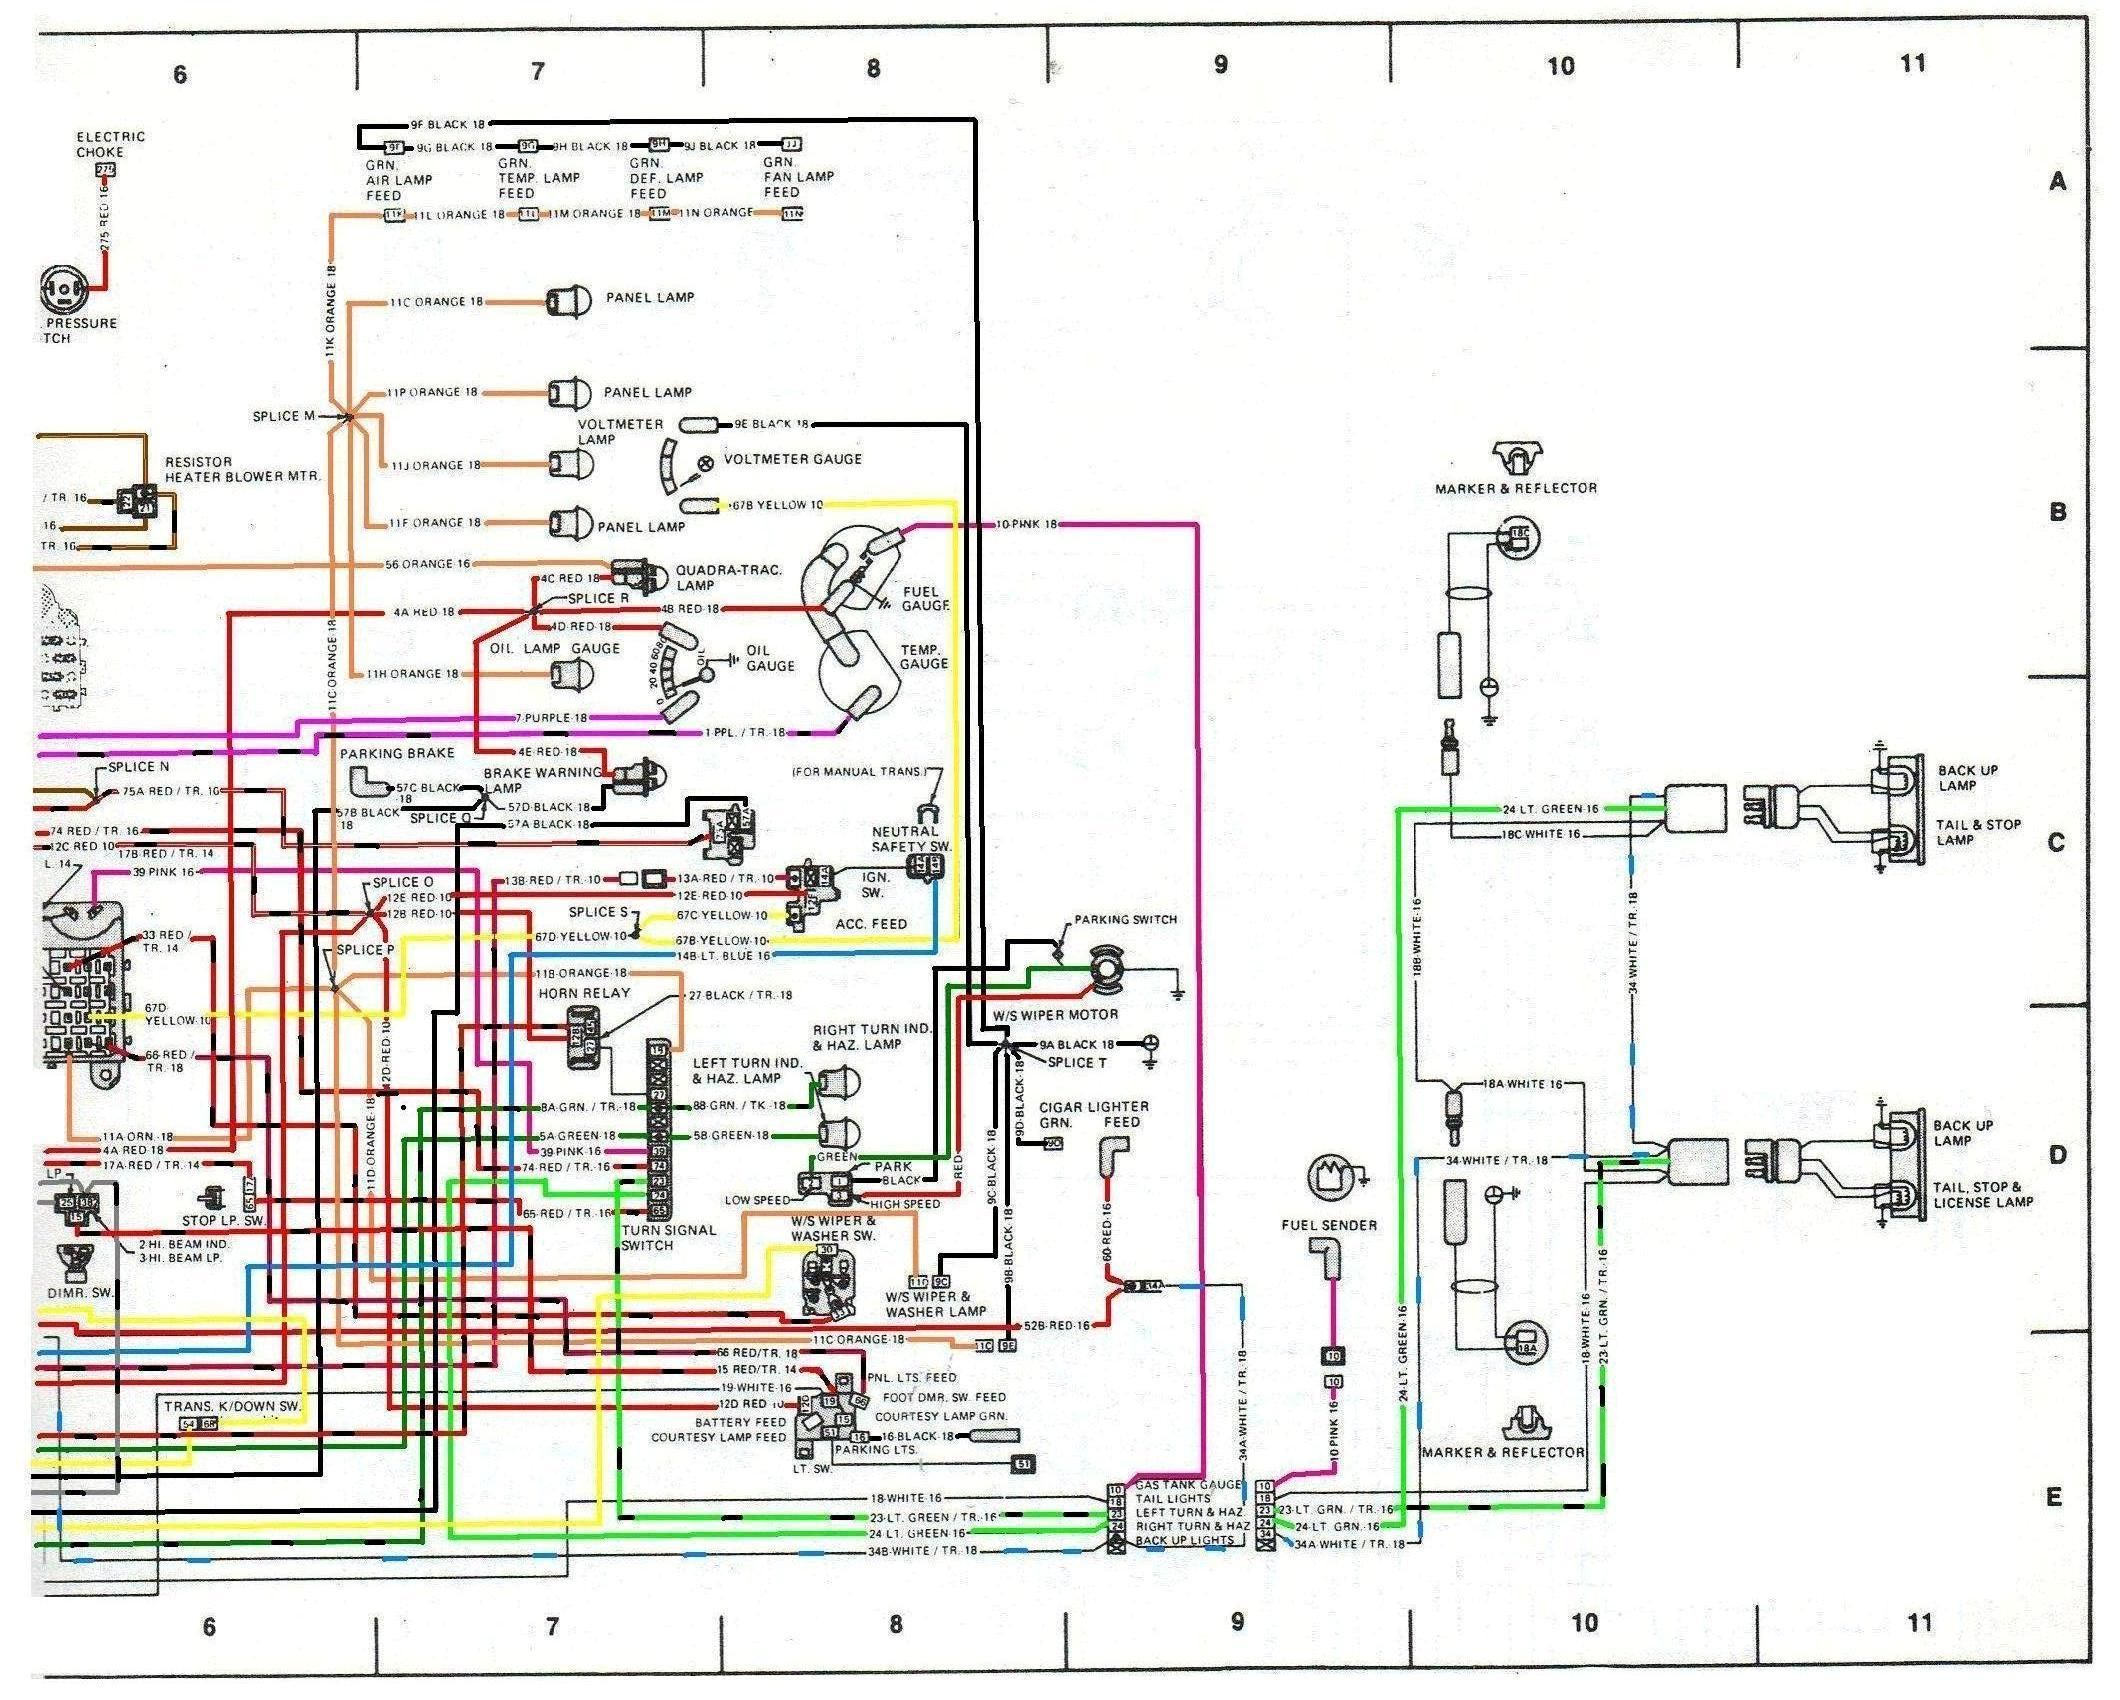 Engine Wiring: I Need a Good Copy of the Wiring for a 1979 ...